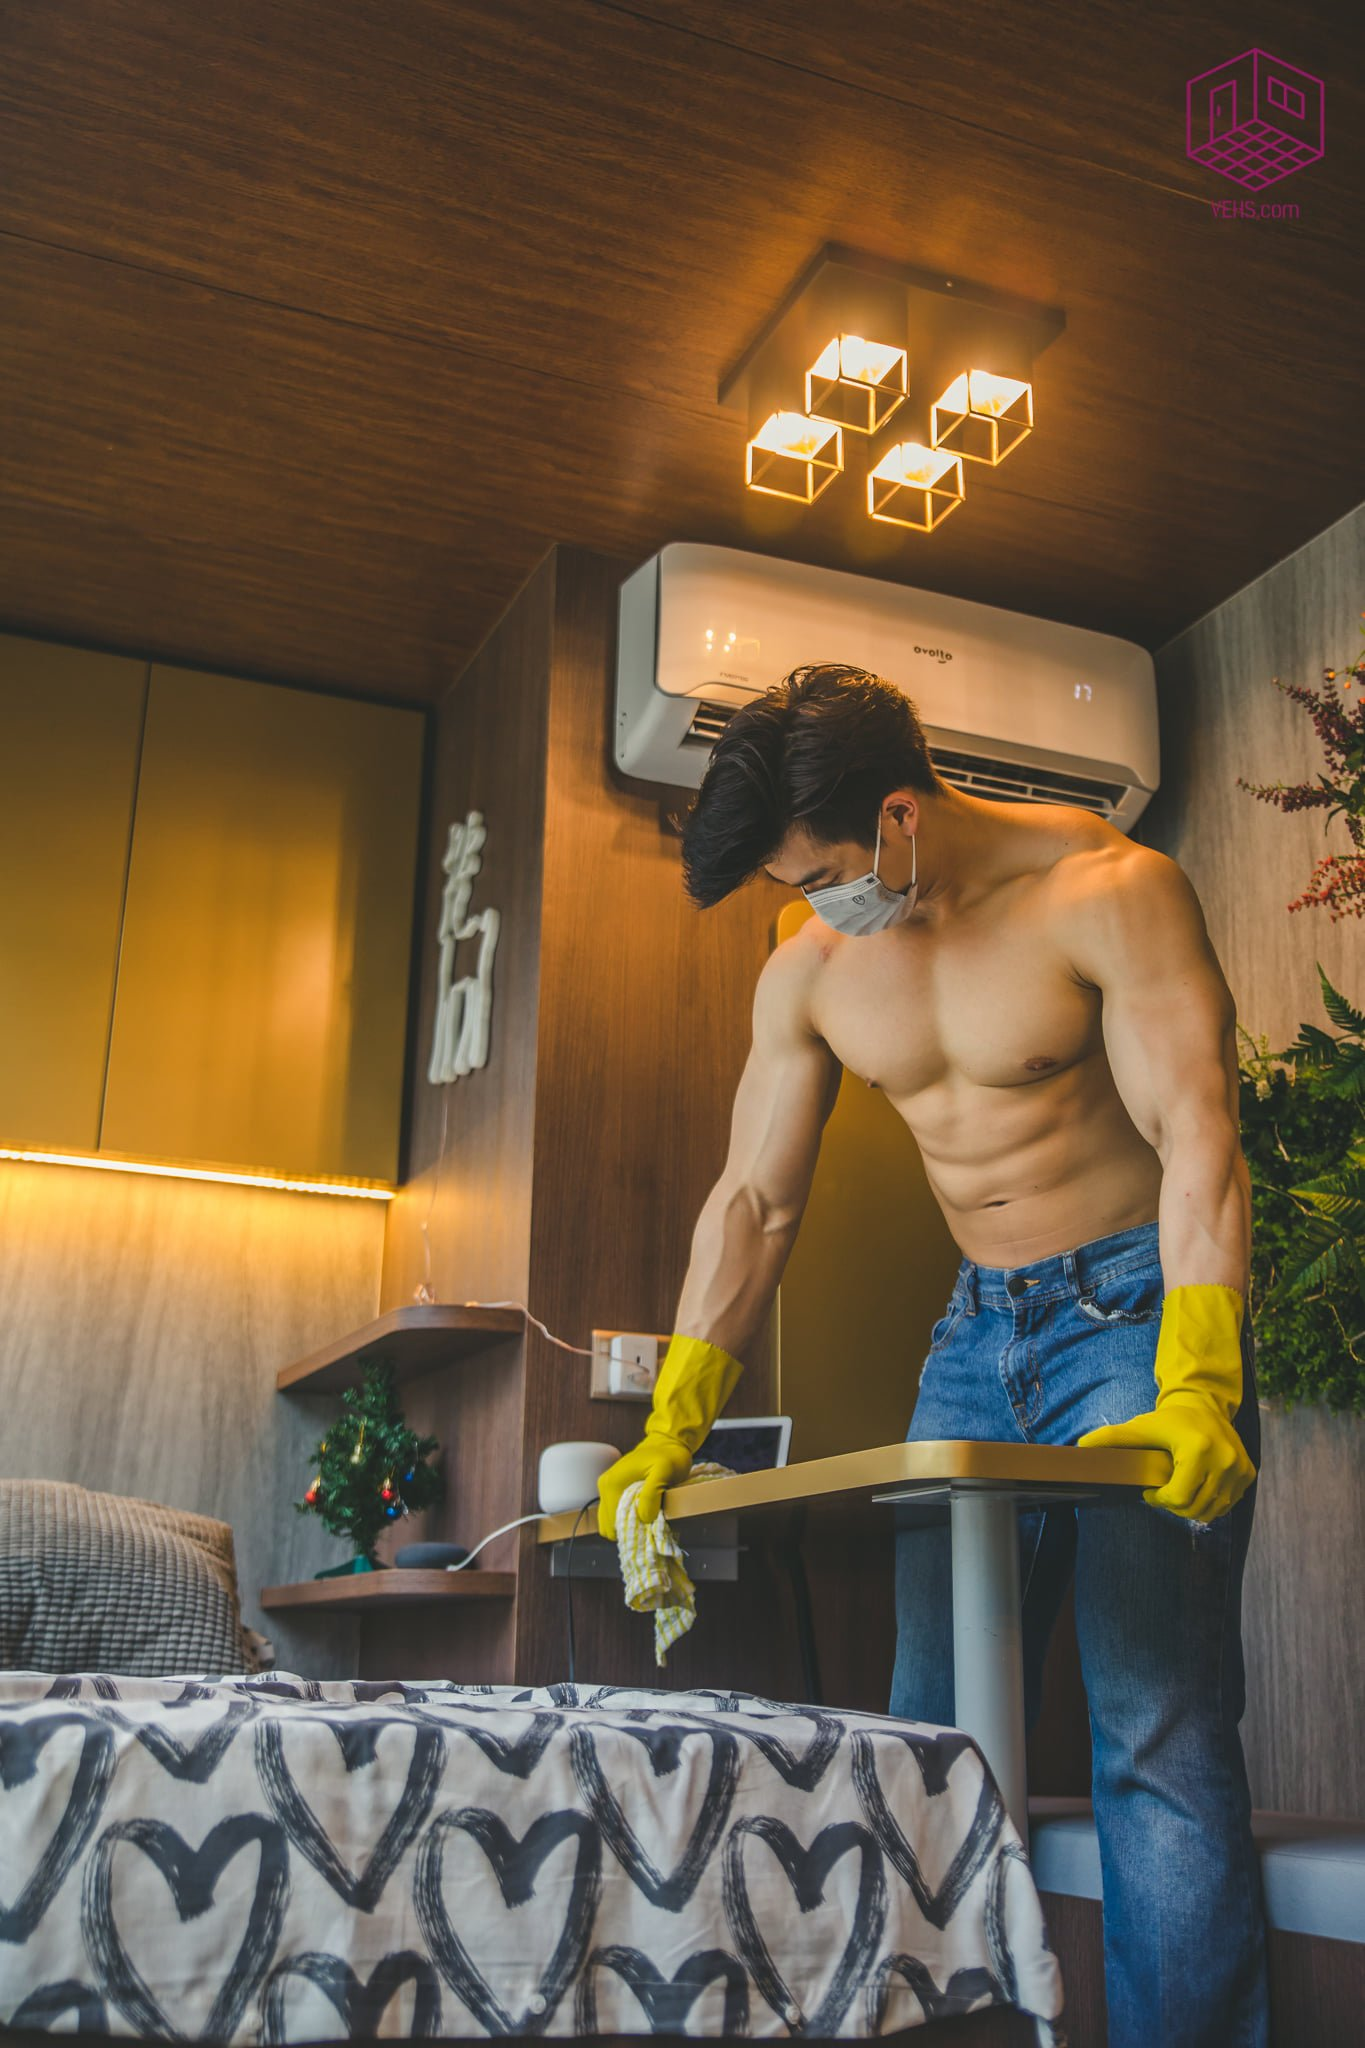 Hunky men cleaning service